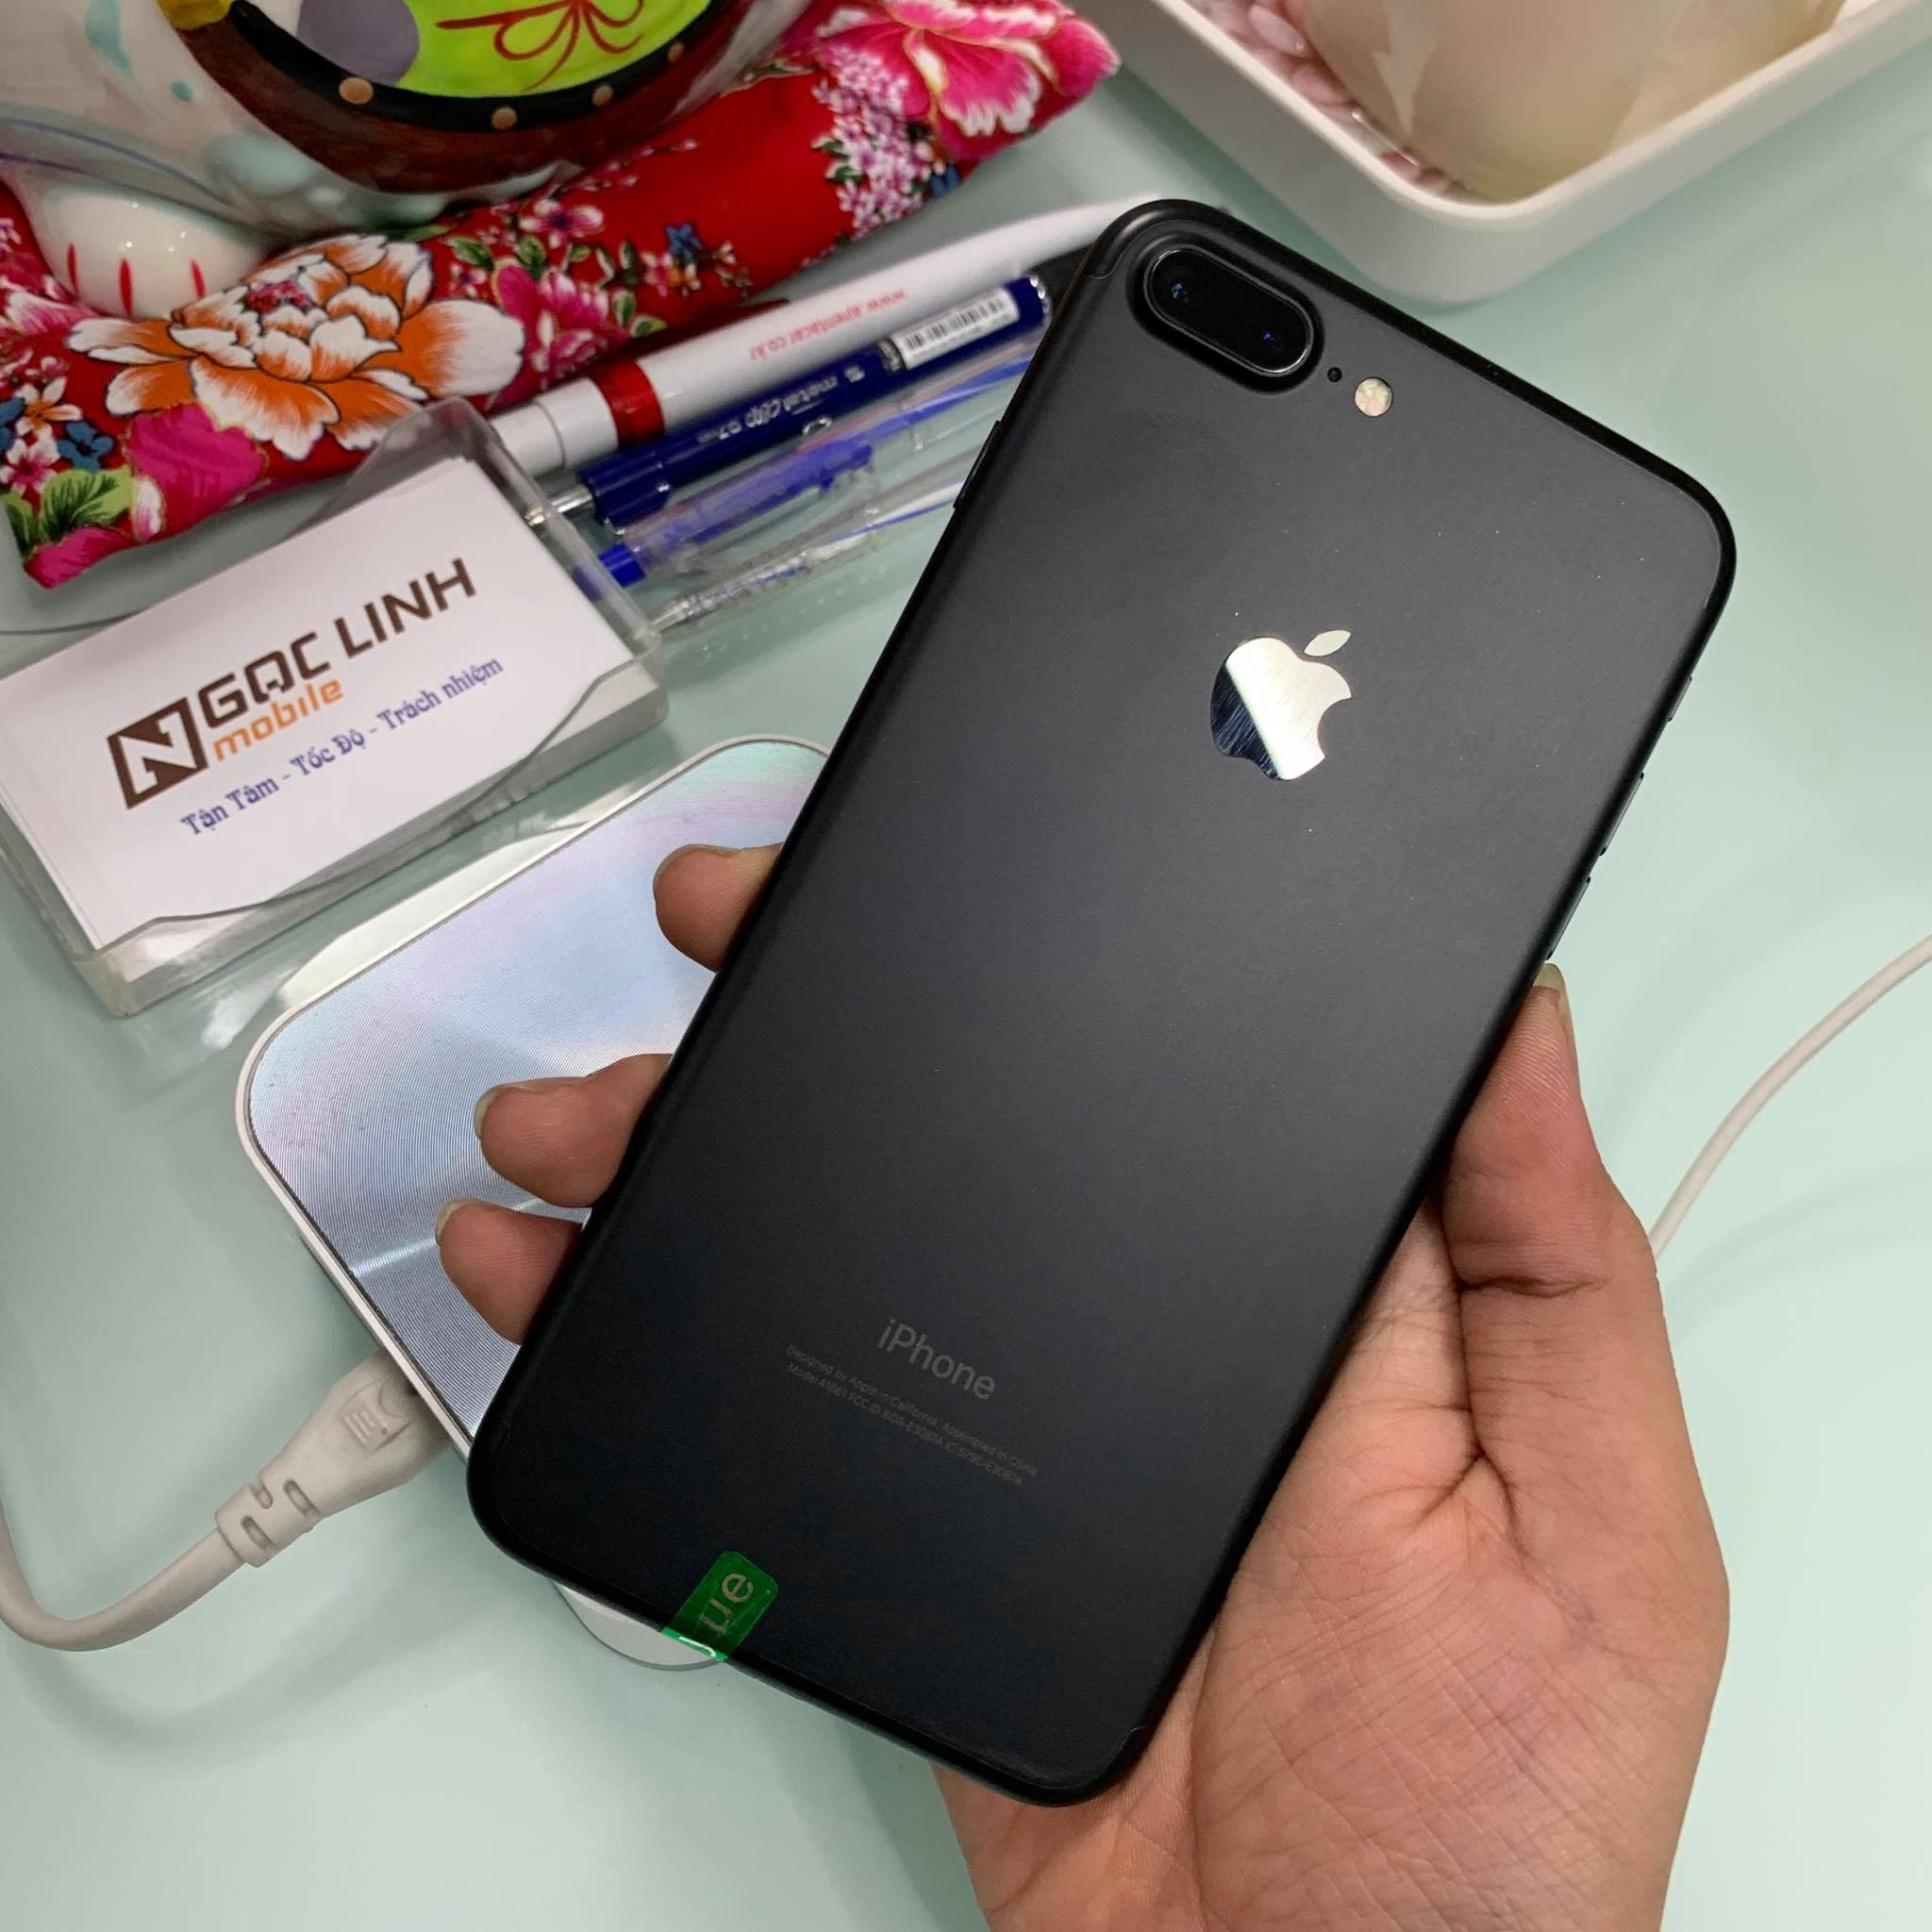 iPhone 7 Plus iPhone 7 Plus - Lý do iPhone 7 Plus đáng lựa chọn ở hiện tại